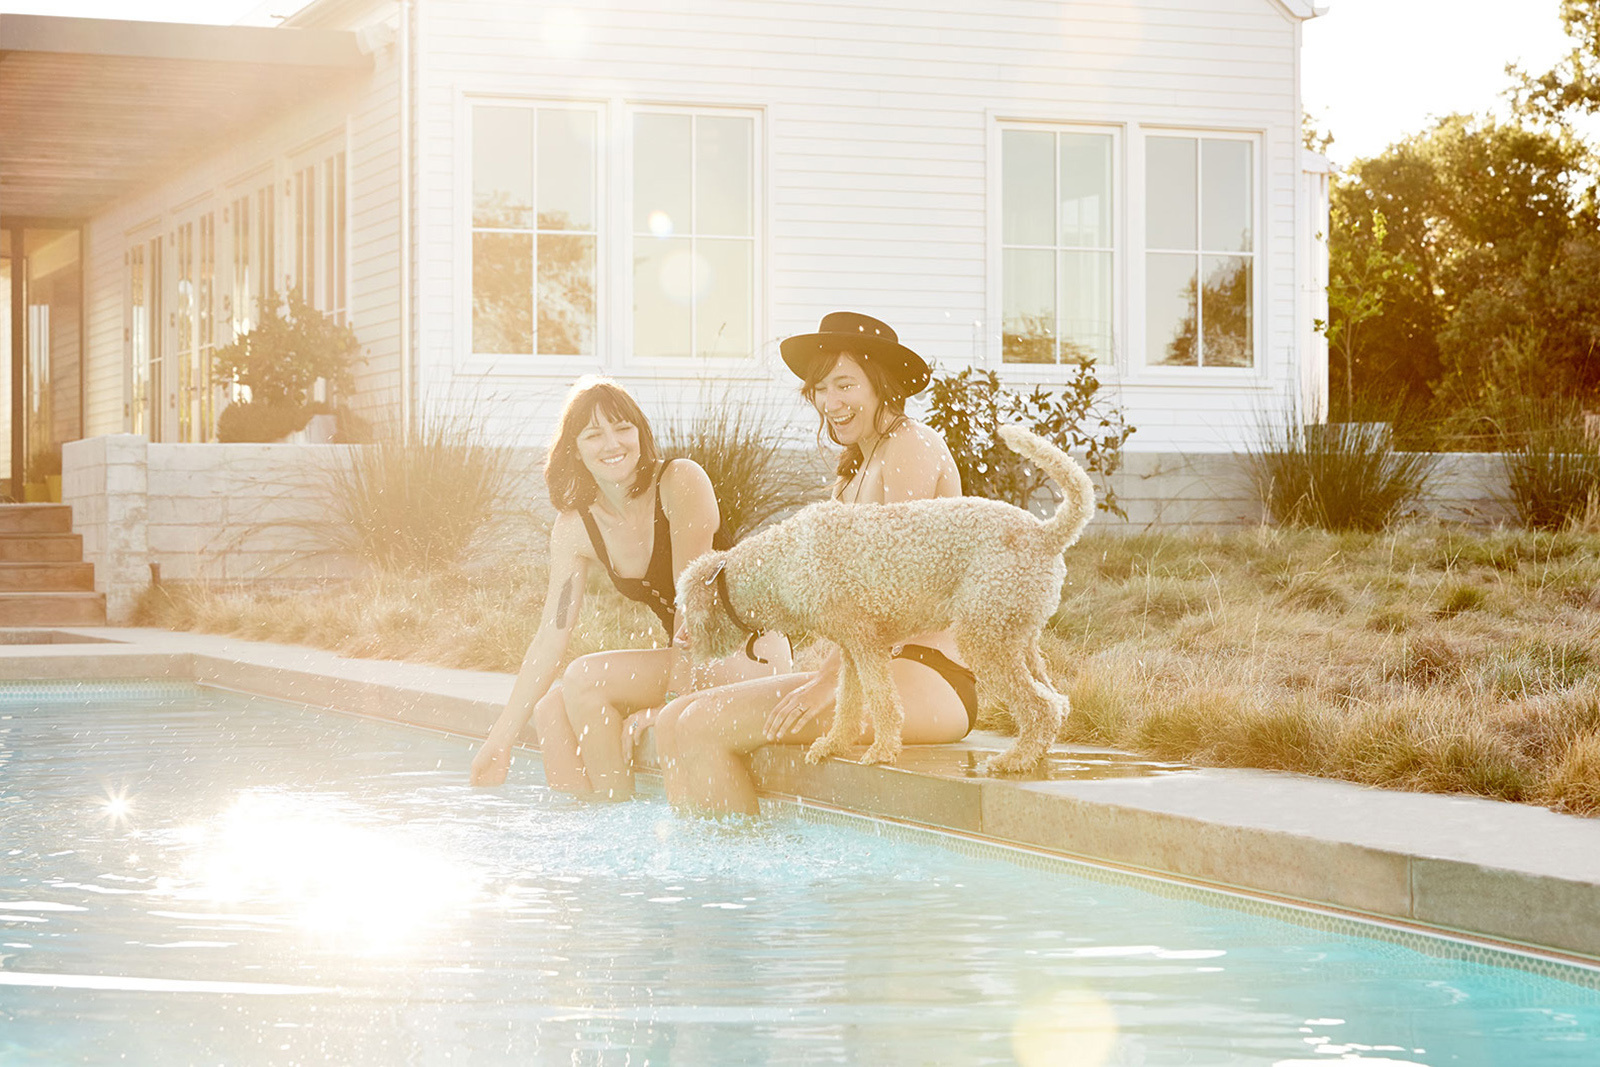 Friends with dog at pool  | Trinette+Chris Photographers